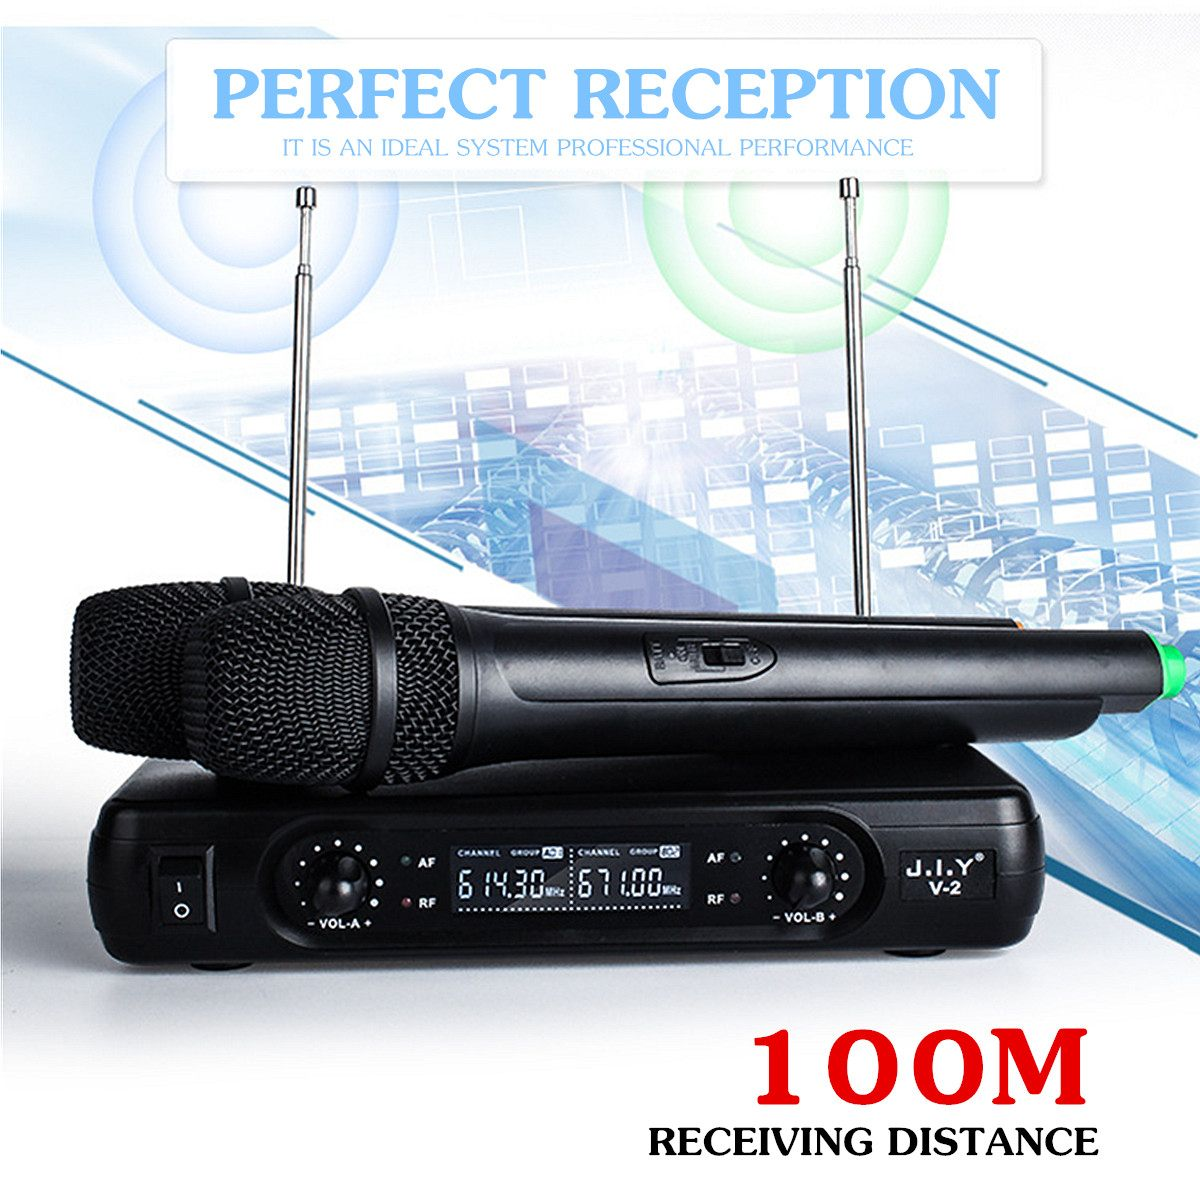 Dual Cordless Handheld Mic 2 Channel Wireless Microphone System with LCD Display High-fidelity Stability Large Receiving enlarge